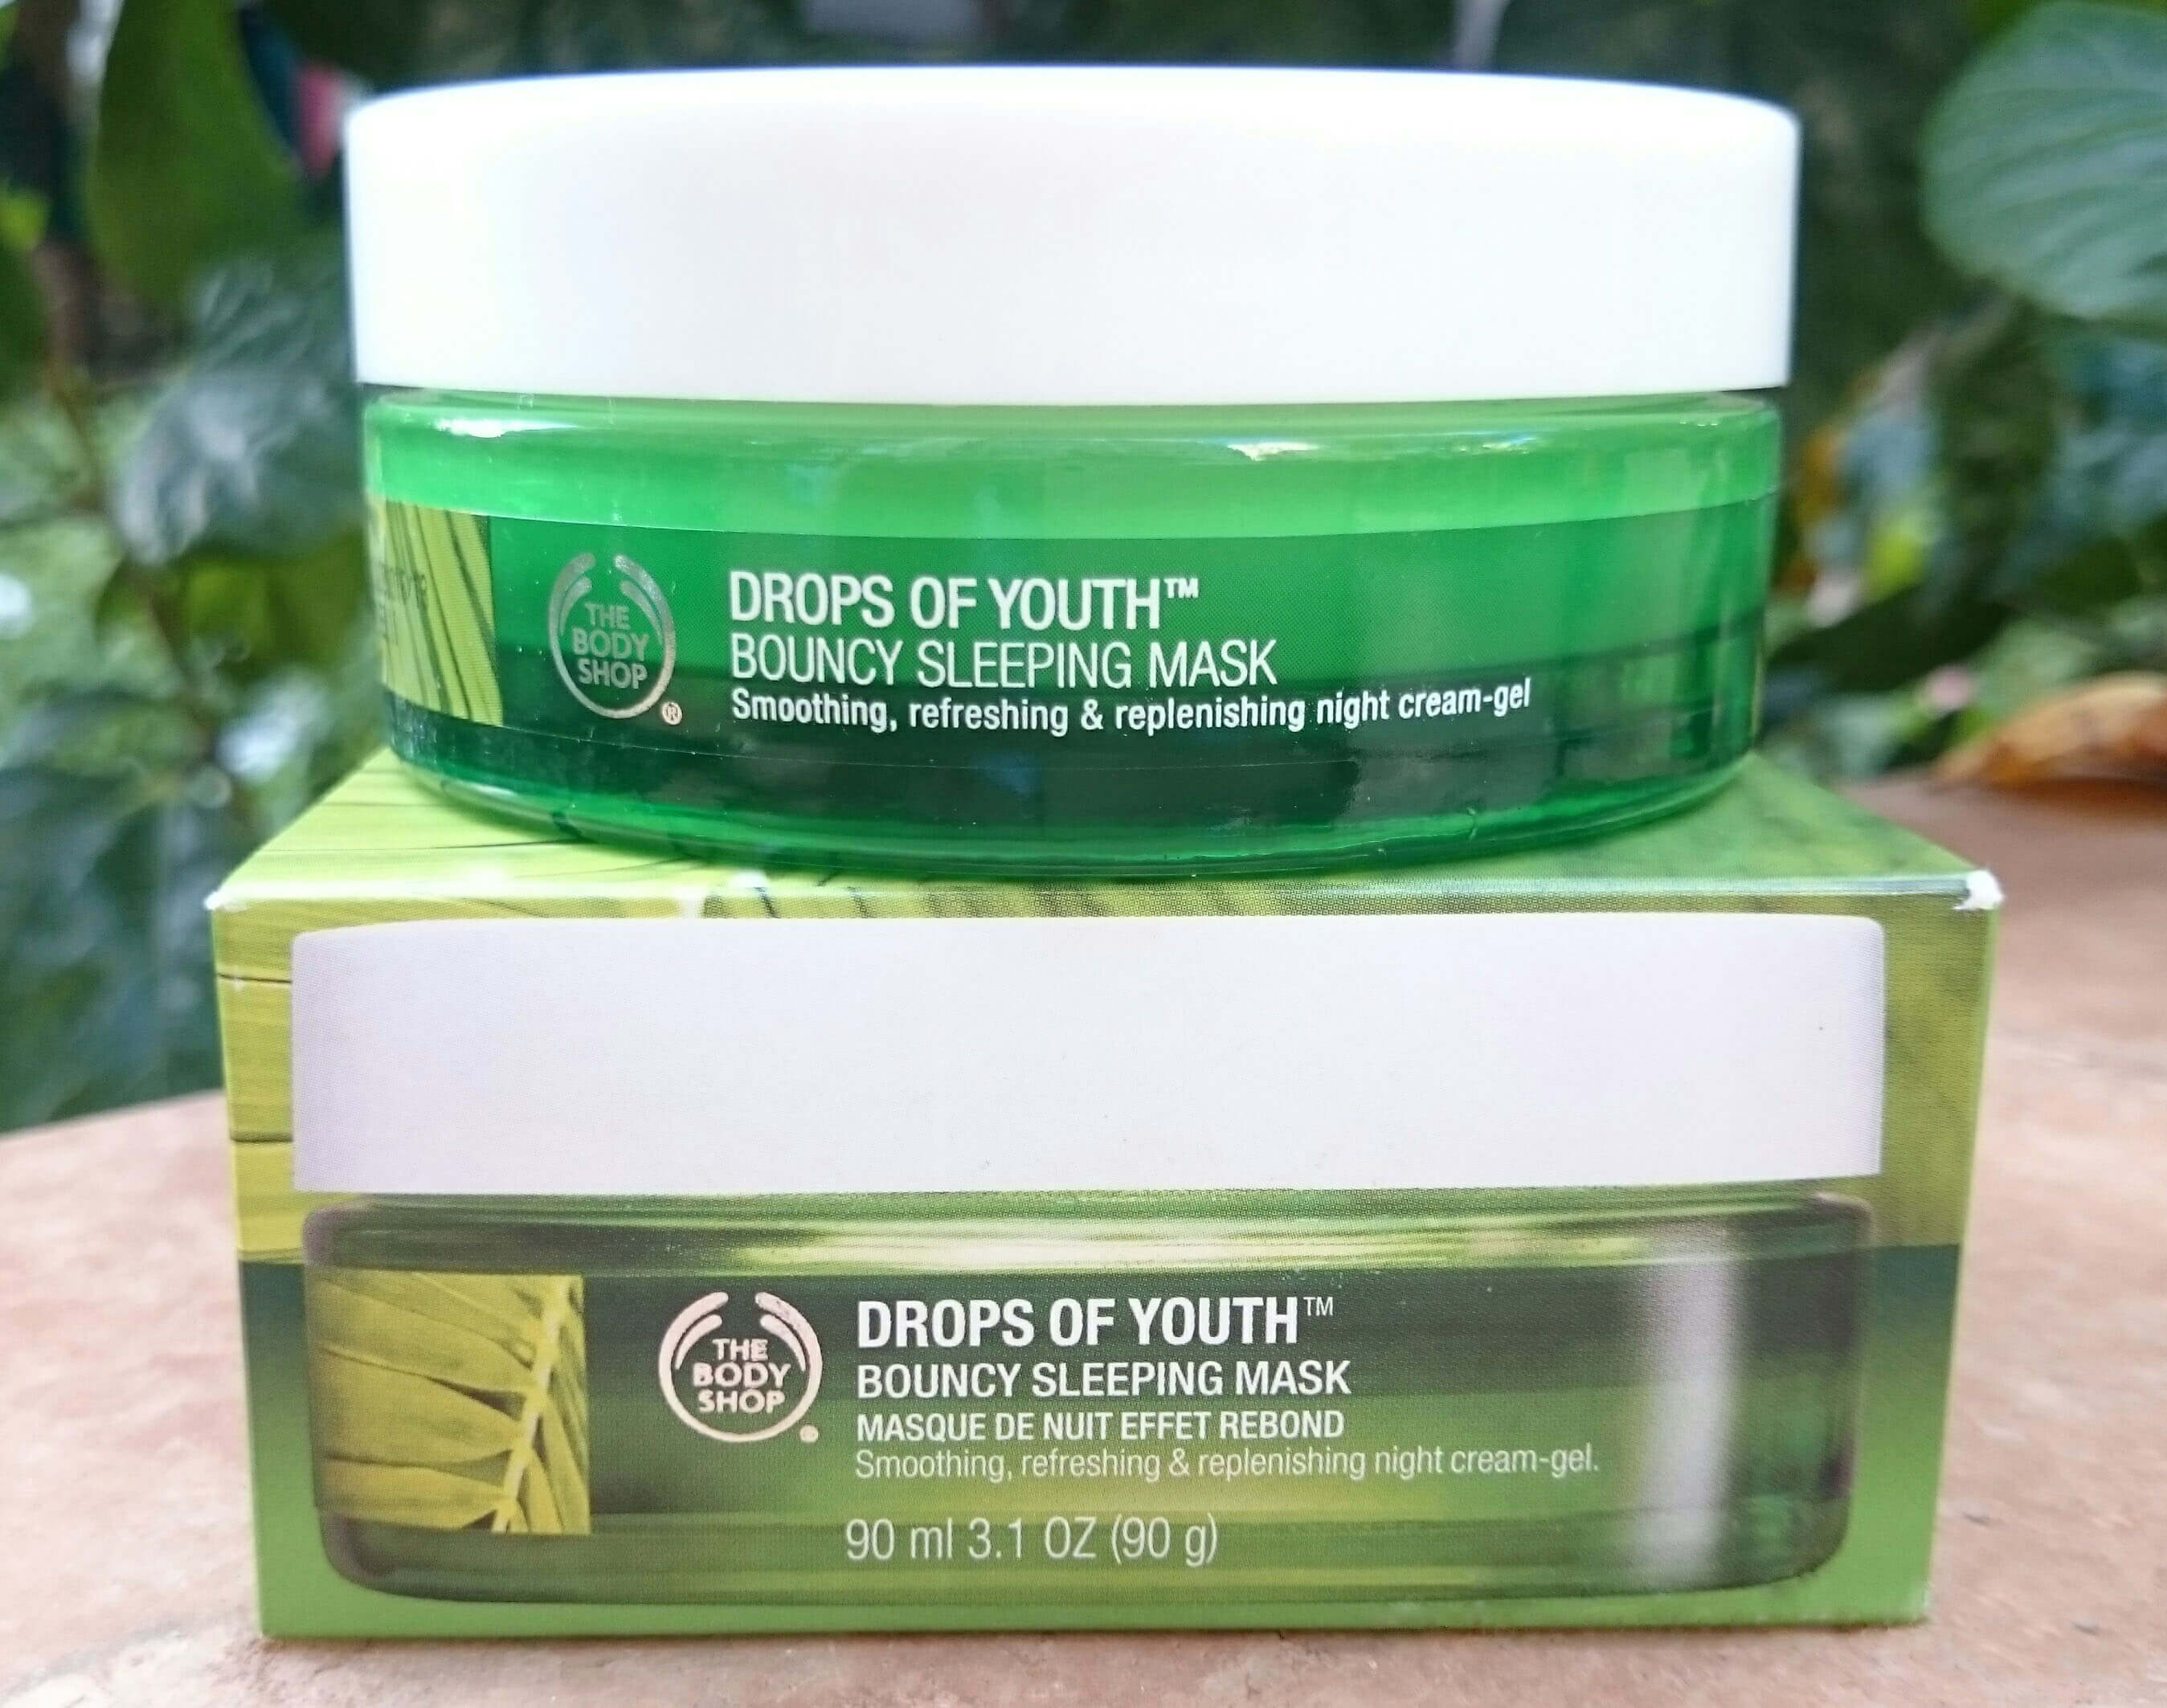 mat-na-ngu-thebodyshop-drops-of-youth-youth-bouncy-sleeping-mask-90ml-06-1